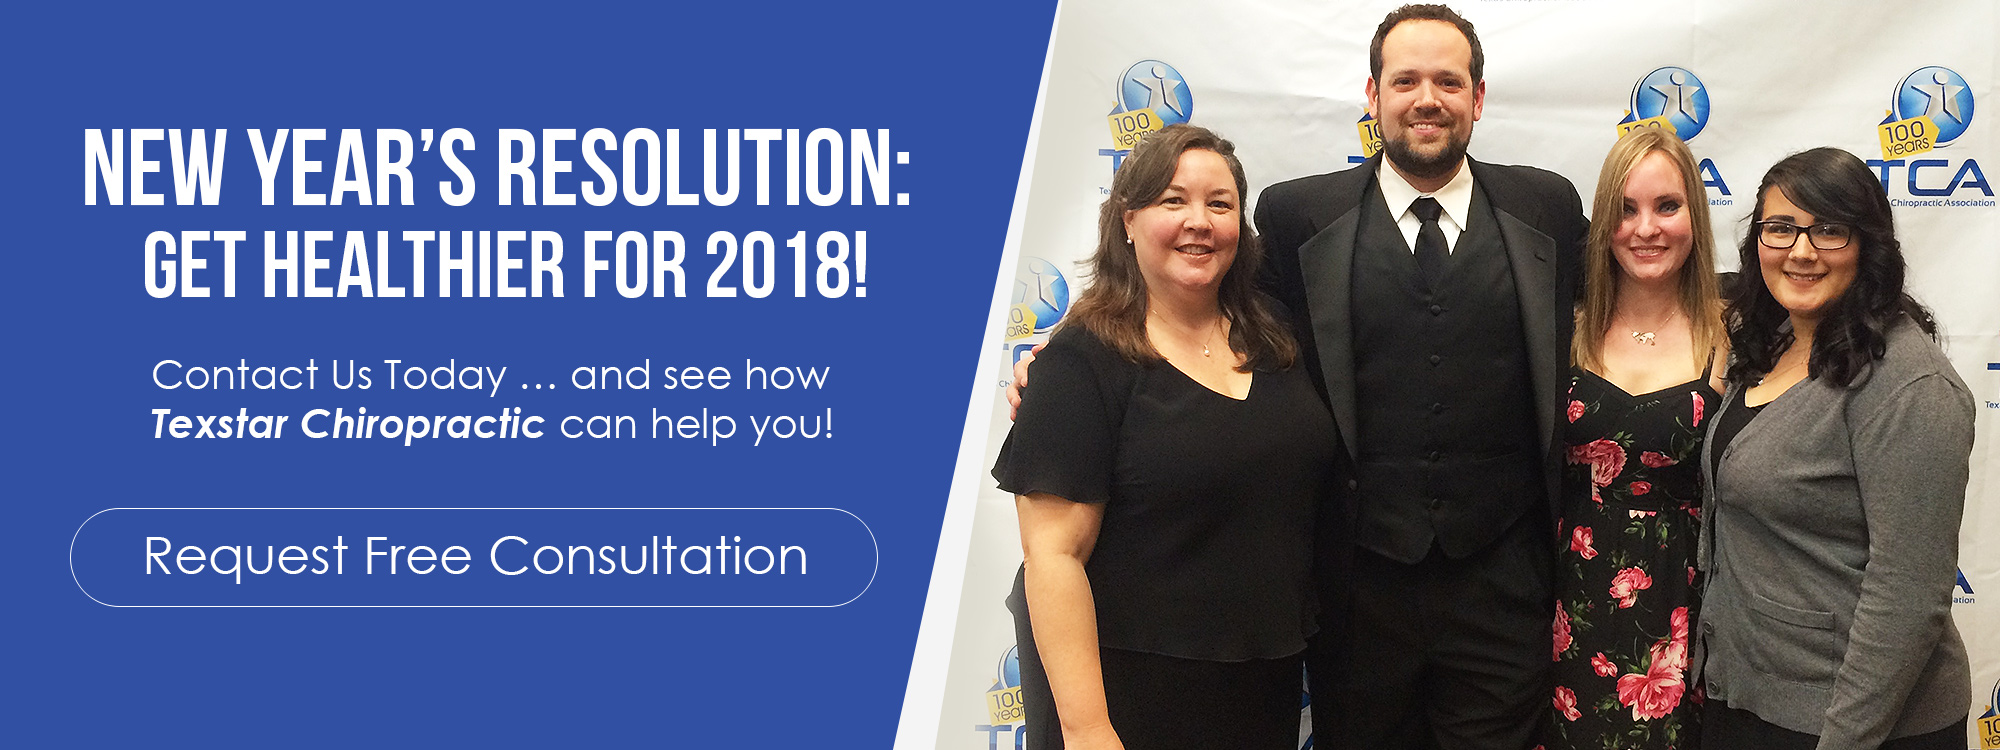 New Year's Resolution: Get Healthier for 2018 - Request a Consultation